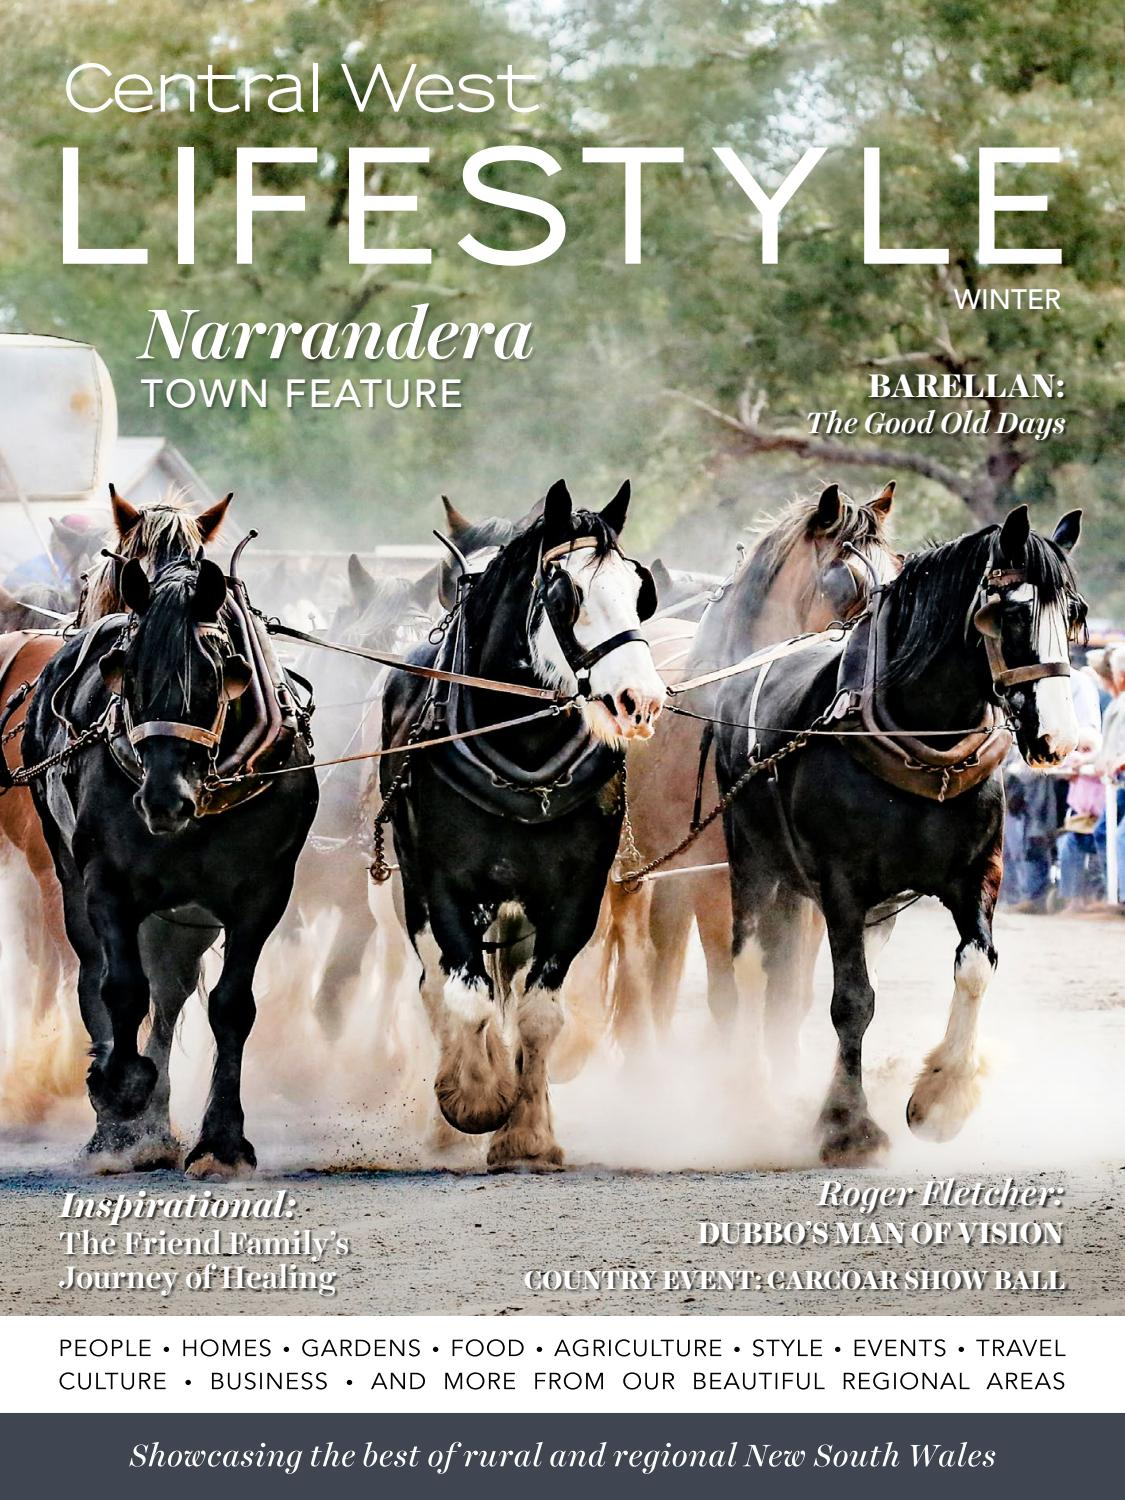 25 Central West Lifestyle | Winter 2019 by Regional Lifestyle